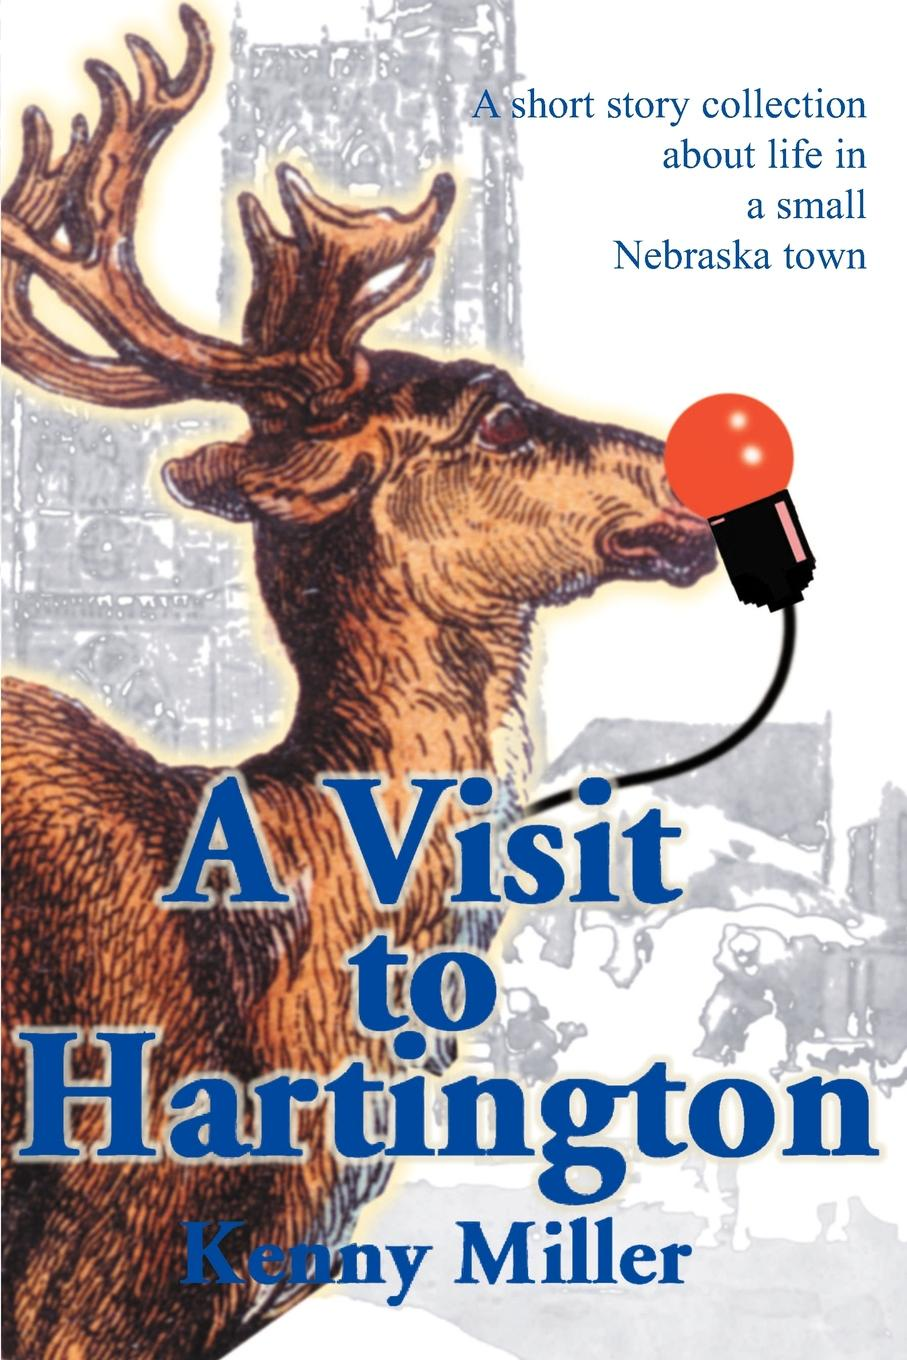 A Visit to Hartington. A Short Story Collection about Life in a Small Nebraska Town. Kenny R. Miller